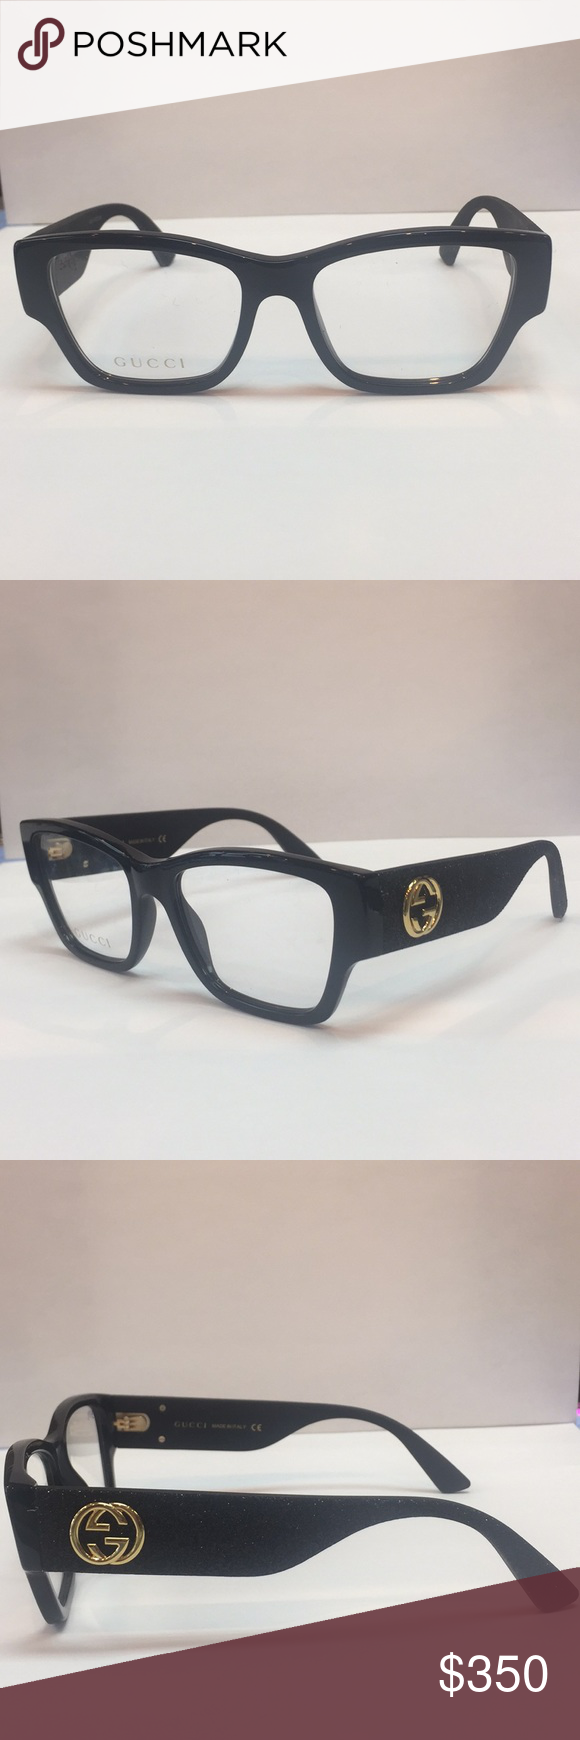 fcee047507e7 Gucci-GG1040O 001 size 51 Gucci Women Optical Frame New comes with Original  Case and